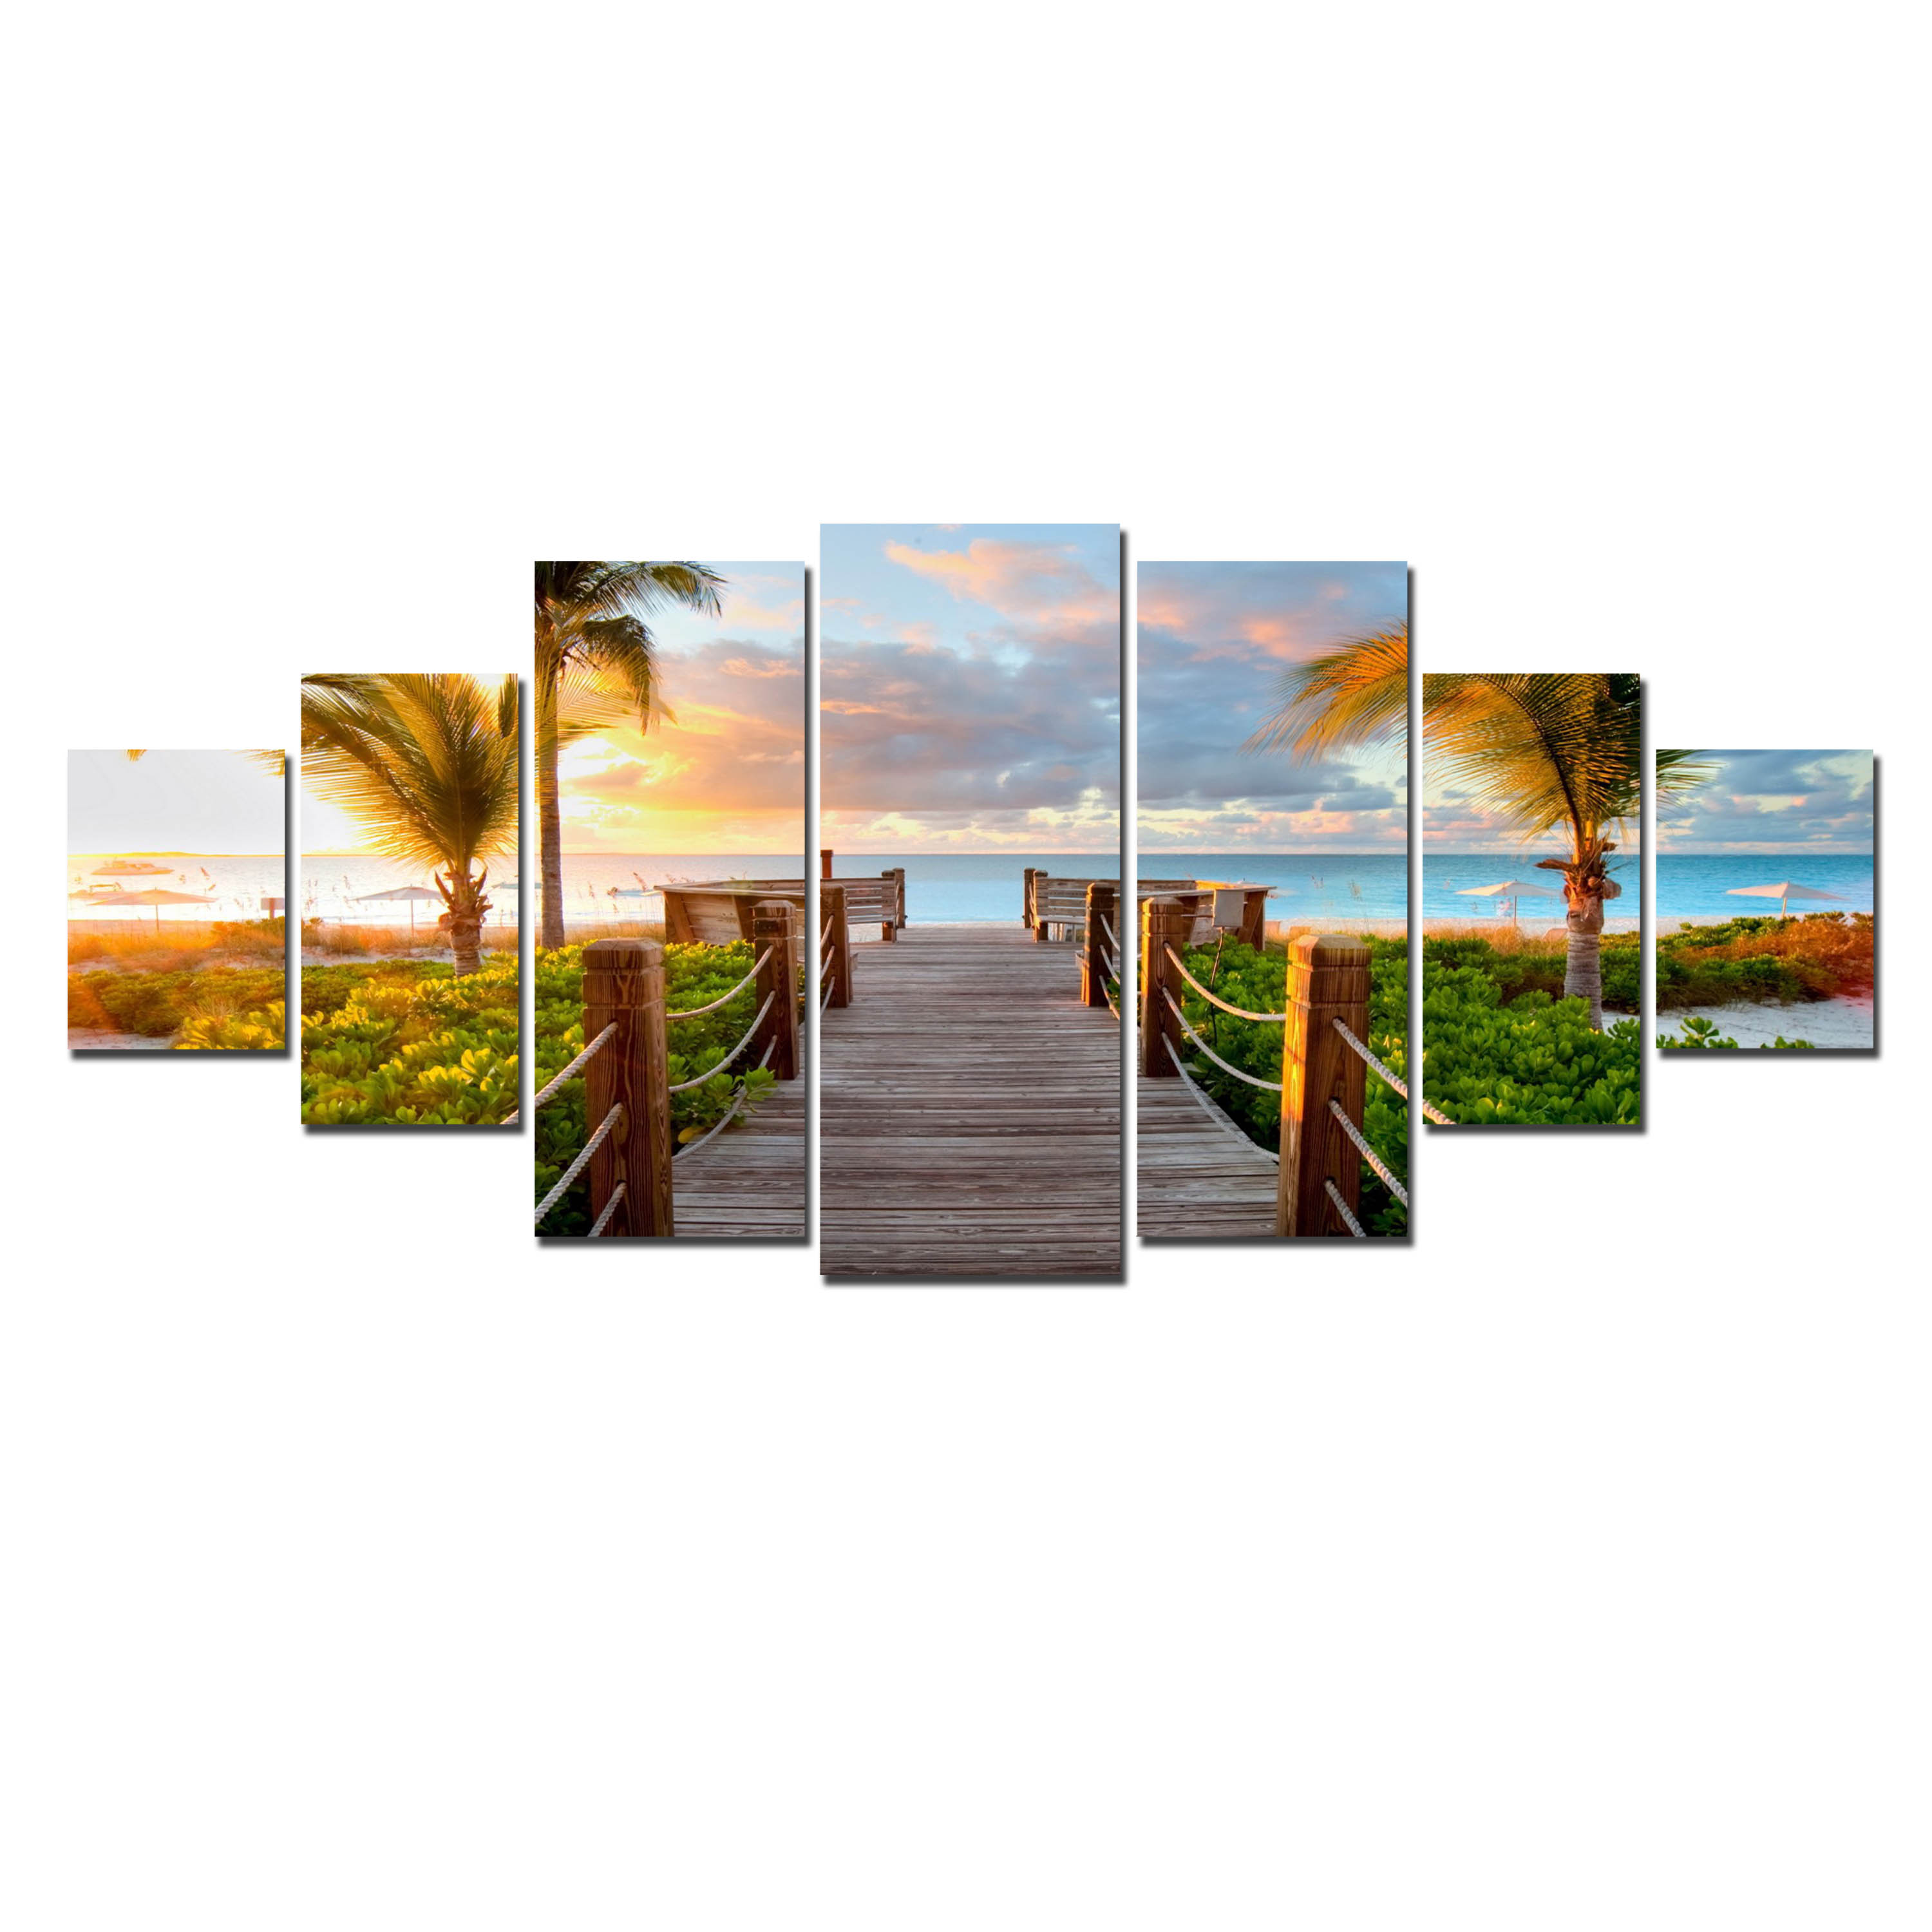 Startonight Huge Canvas Wall Art Summer Bridge Beach I, USA Large Home Decor, Dual View Surprise Artwork Modern Framed Wall Art Set of 7 Panels Total 39.37 x 94.49 inch